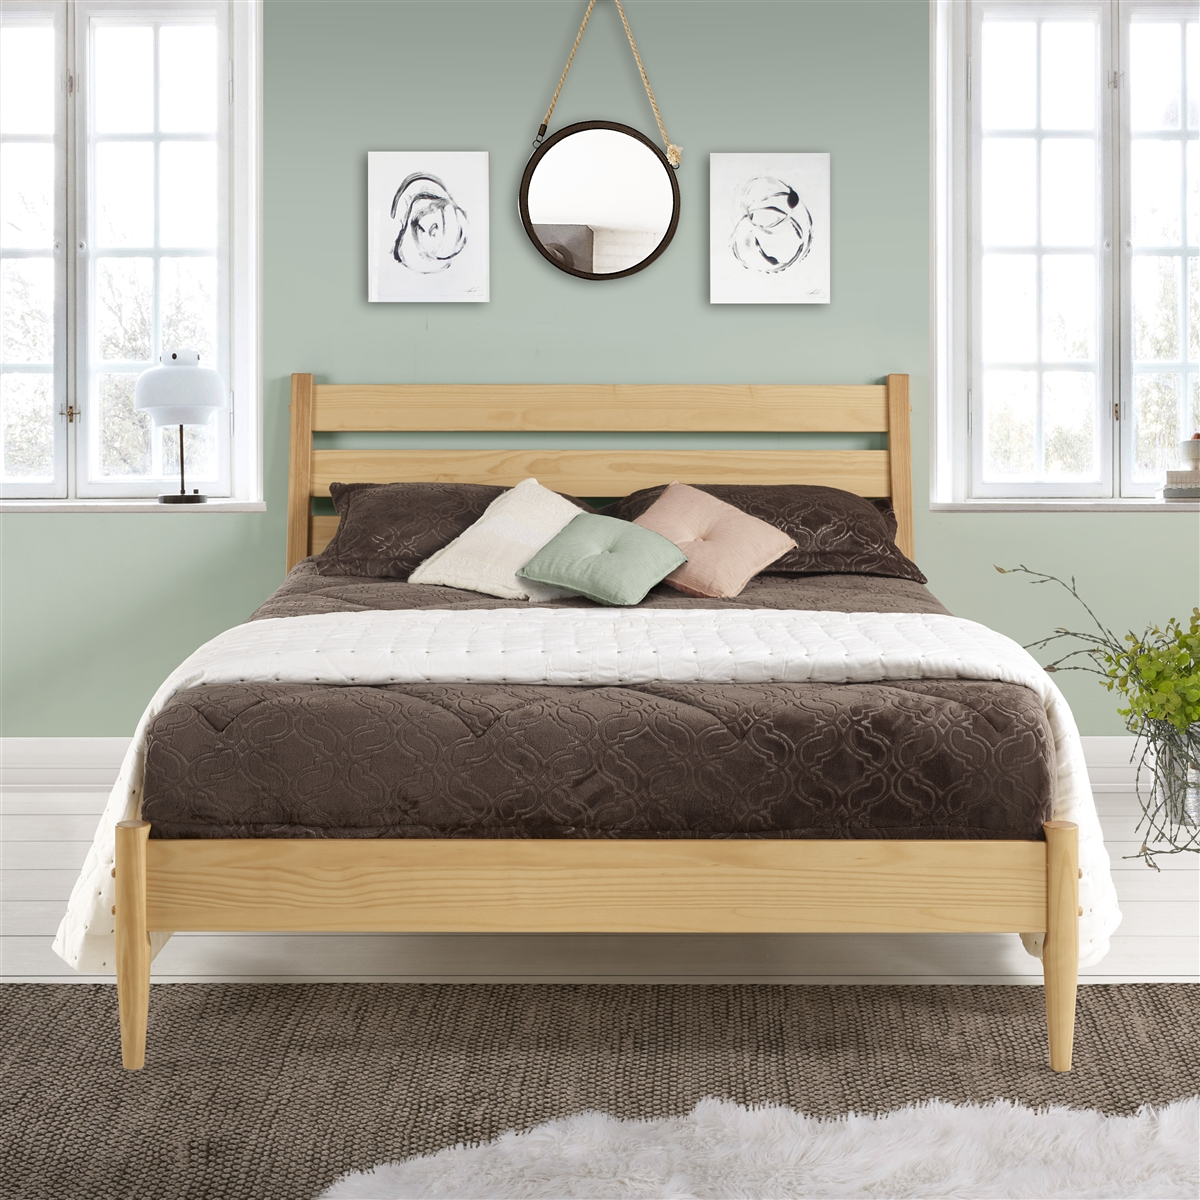 Picture of: Mid Century Platform Bed Queen Size Scandinavian Oak Finish